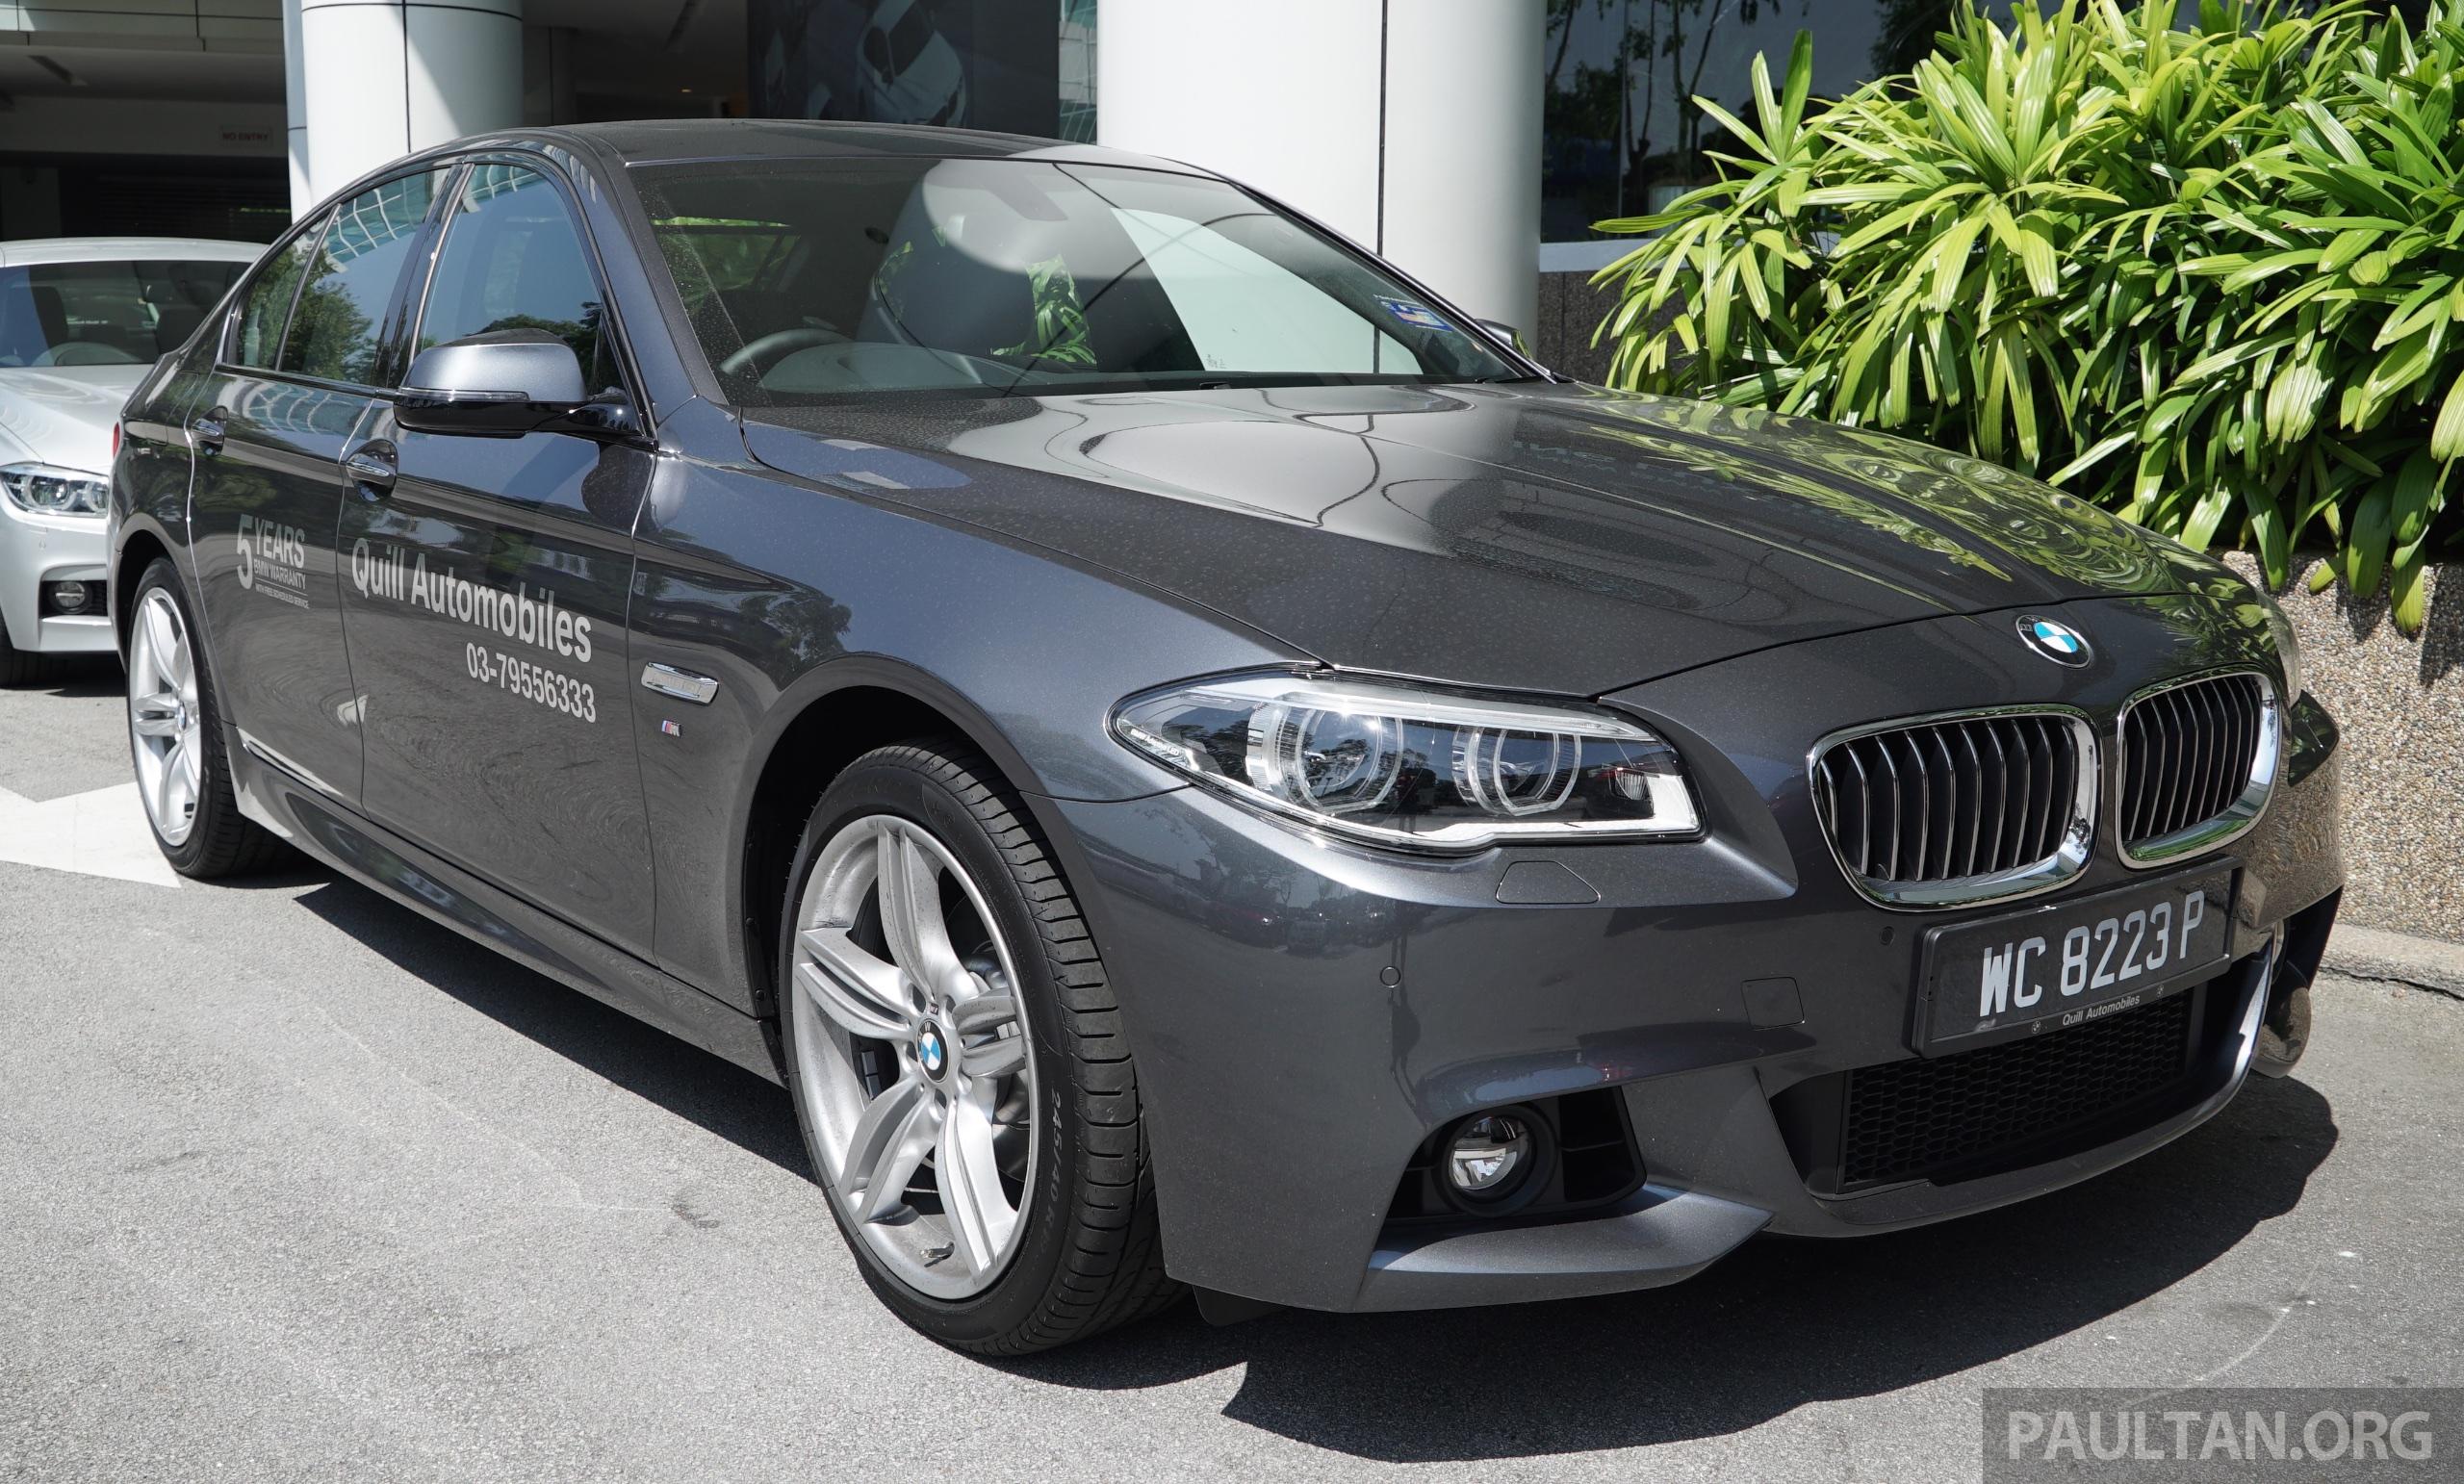 2016 bmw 520d m sport 520i m sport 528i m sport all updated in malaysia eev prices from rm318k. Black Bedroom Furniture Sets. Home Design Ideas